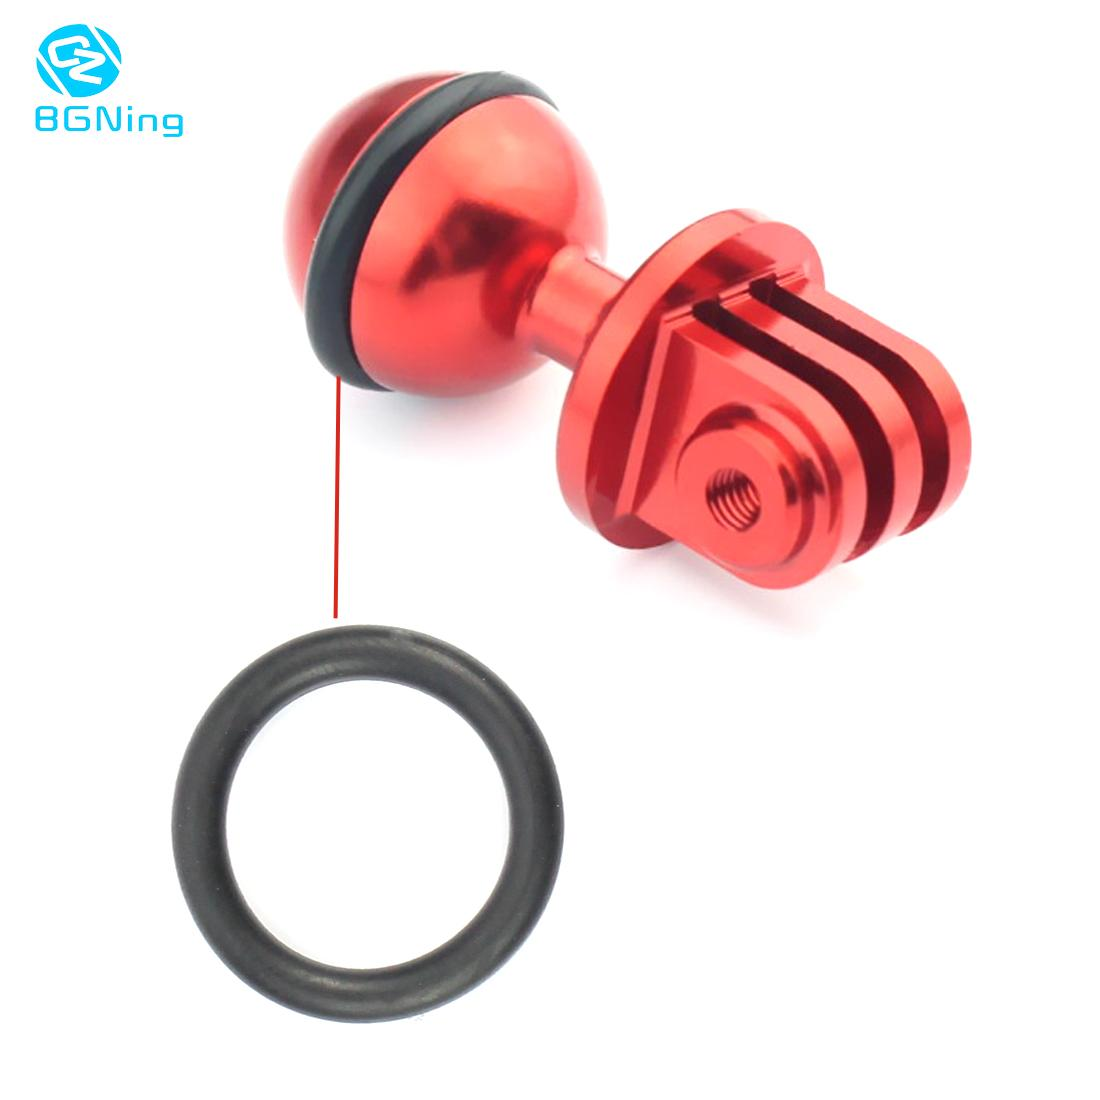 10PCS BGNing Diving Waterproof O Ring for Video Light Arm Bracket Ball Mount Adapter SLR Camera Tray Underwater Photography